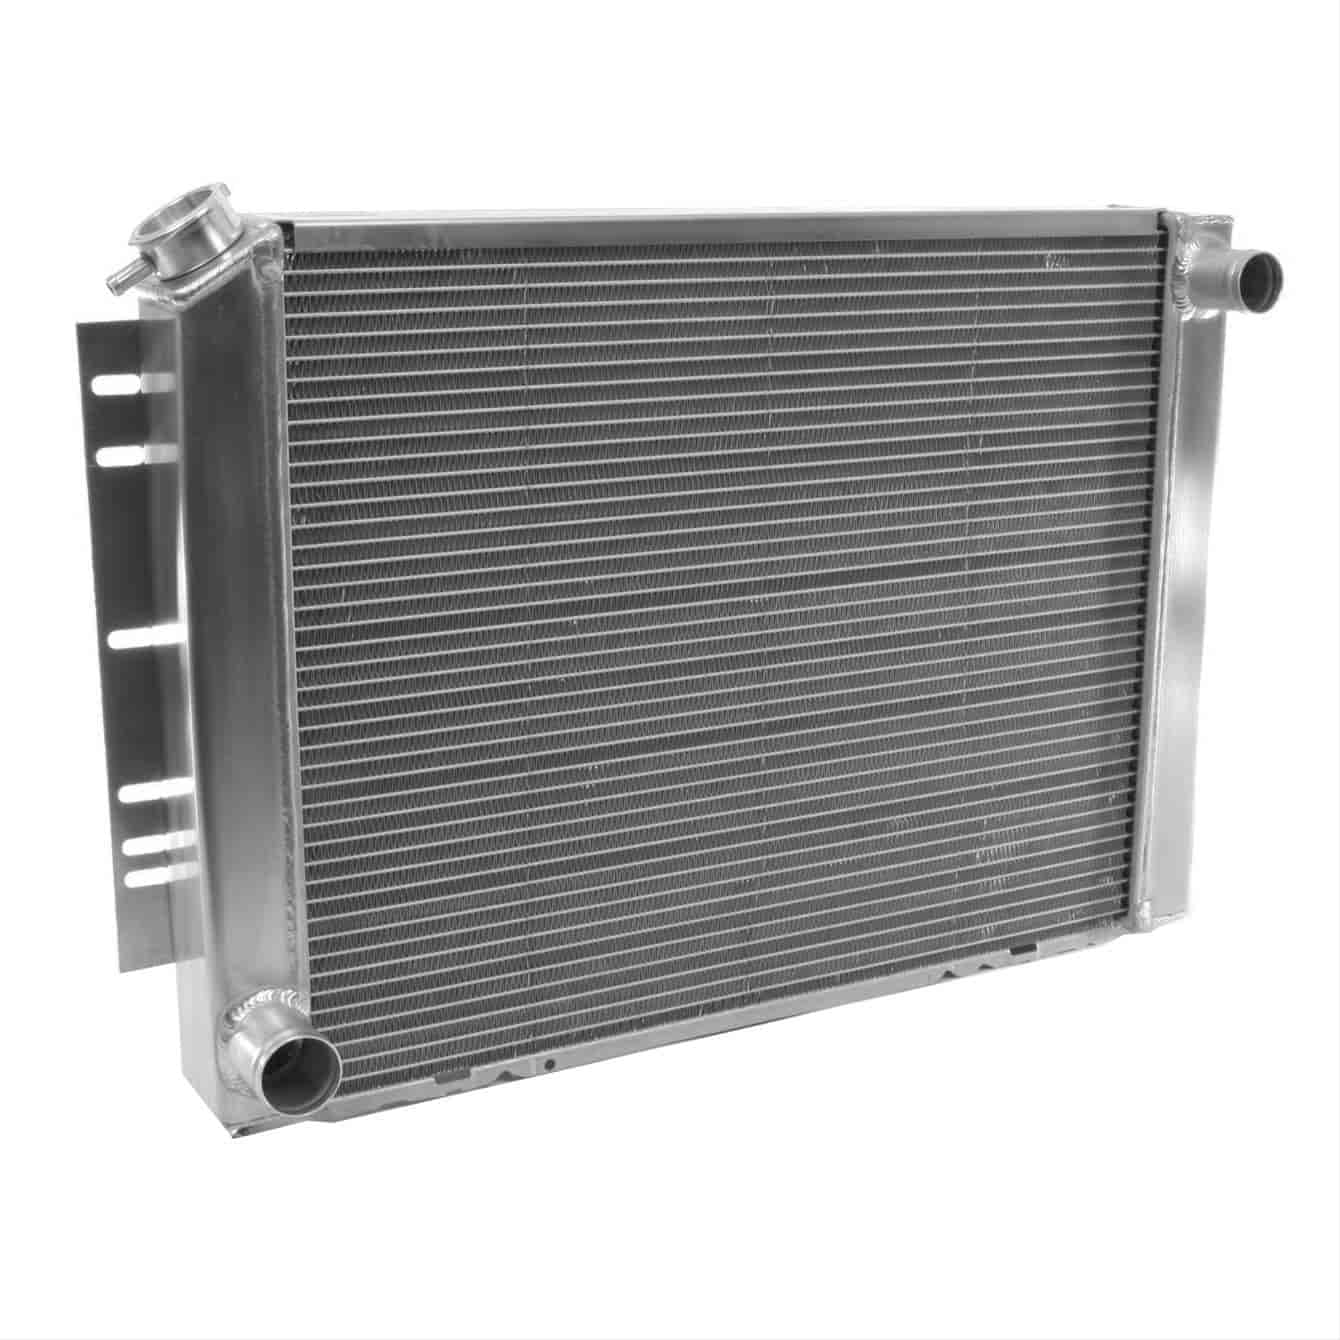 Be Cool Radiators 10038 - Be Cool Aluminator Series Custom Fit Aluminum Radiators